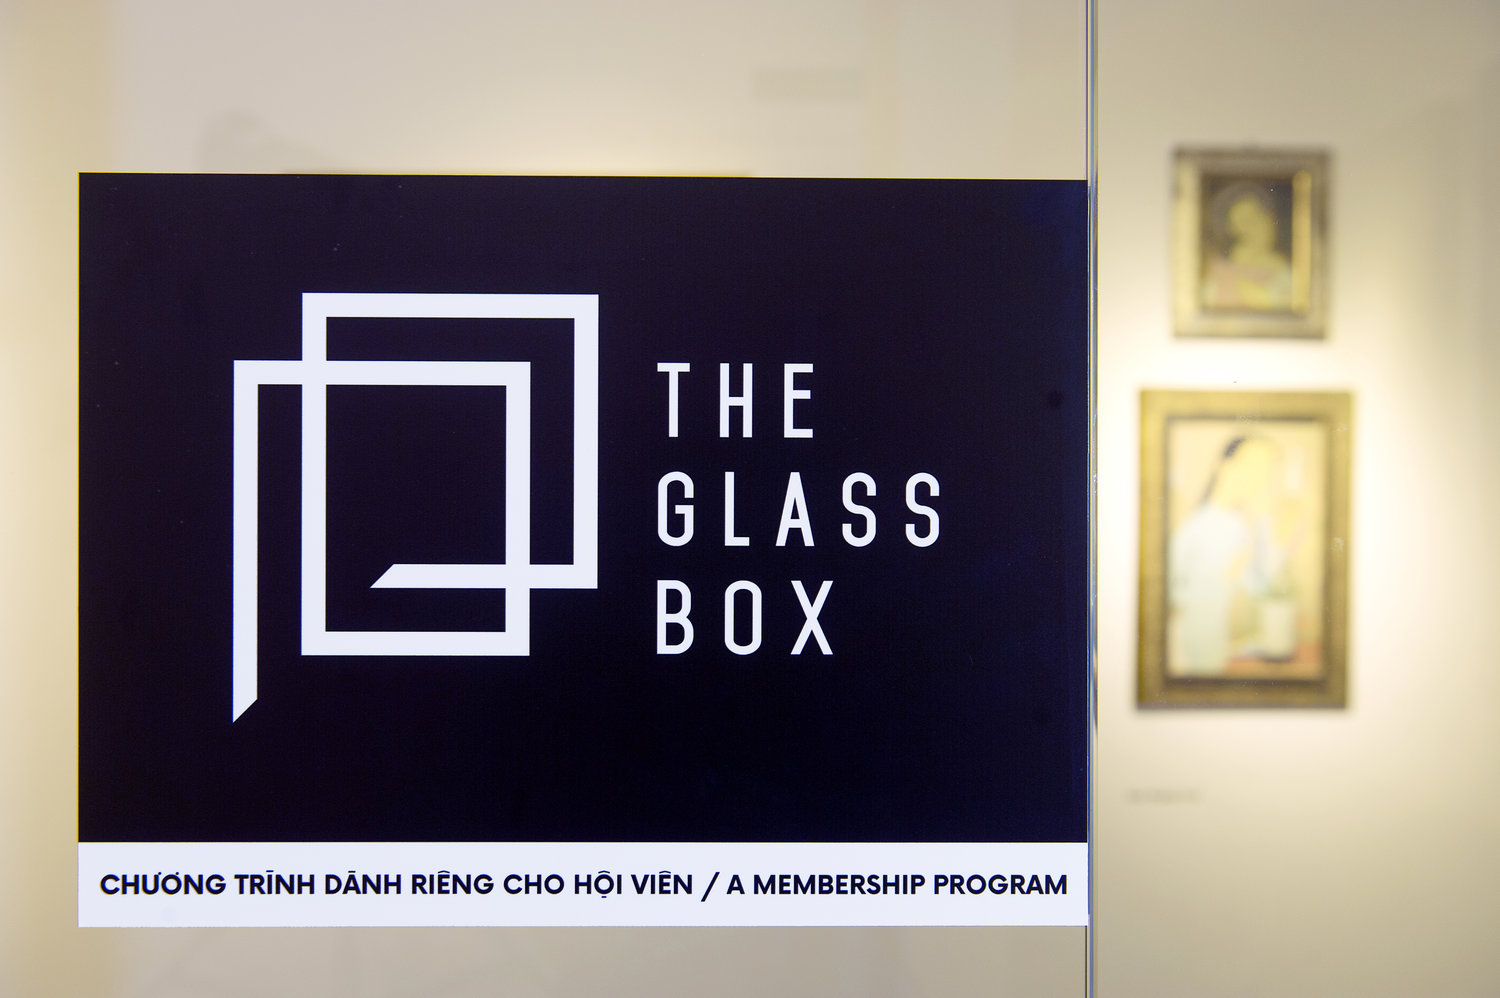 An image of The Glass Box exhibition held at The Factory Contemporary Arts Center, Ho Chi Minh City, Vietnam